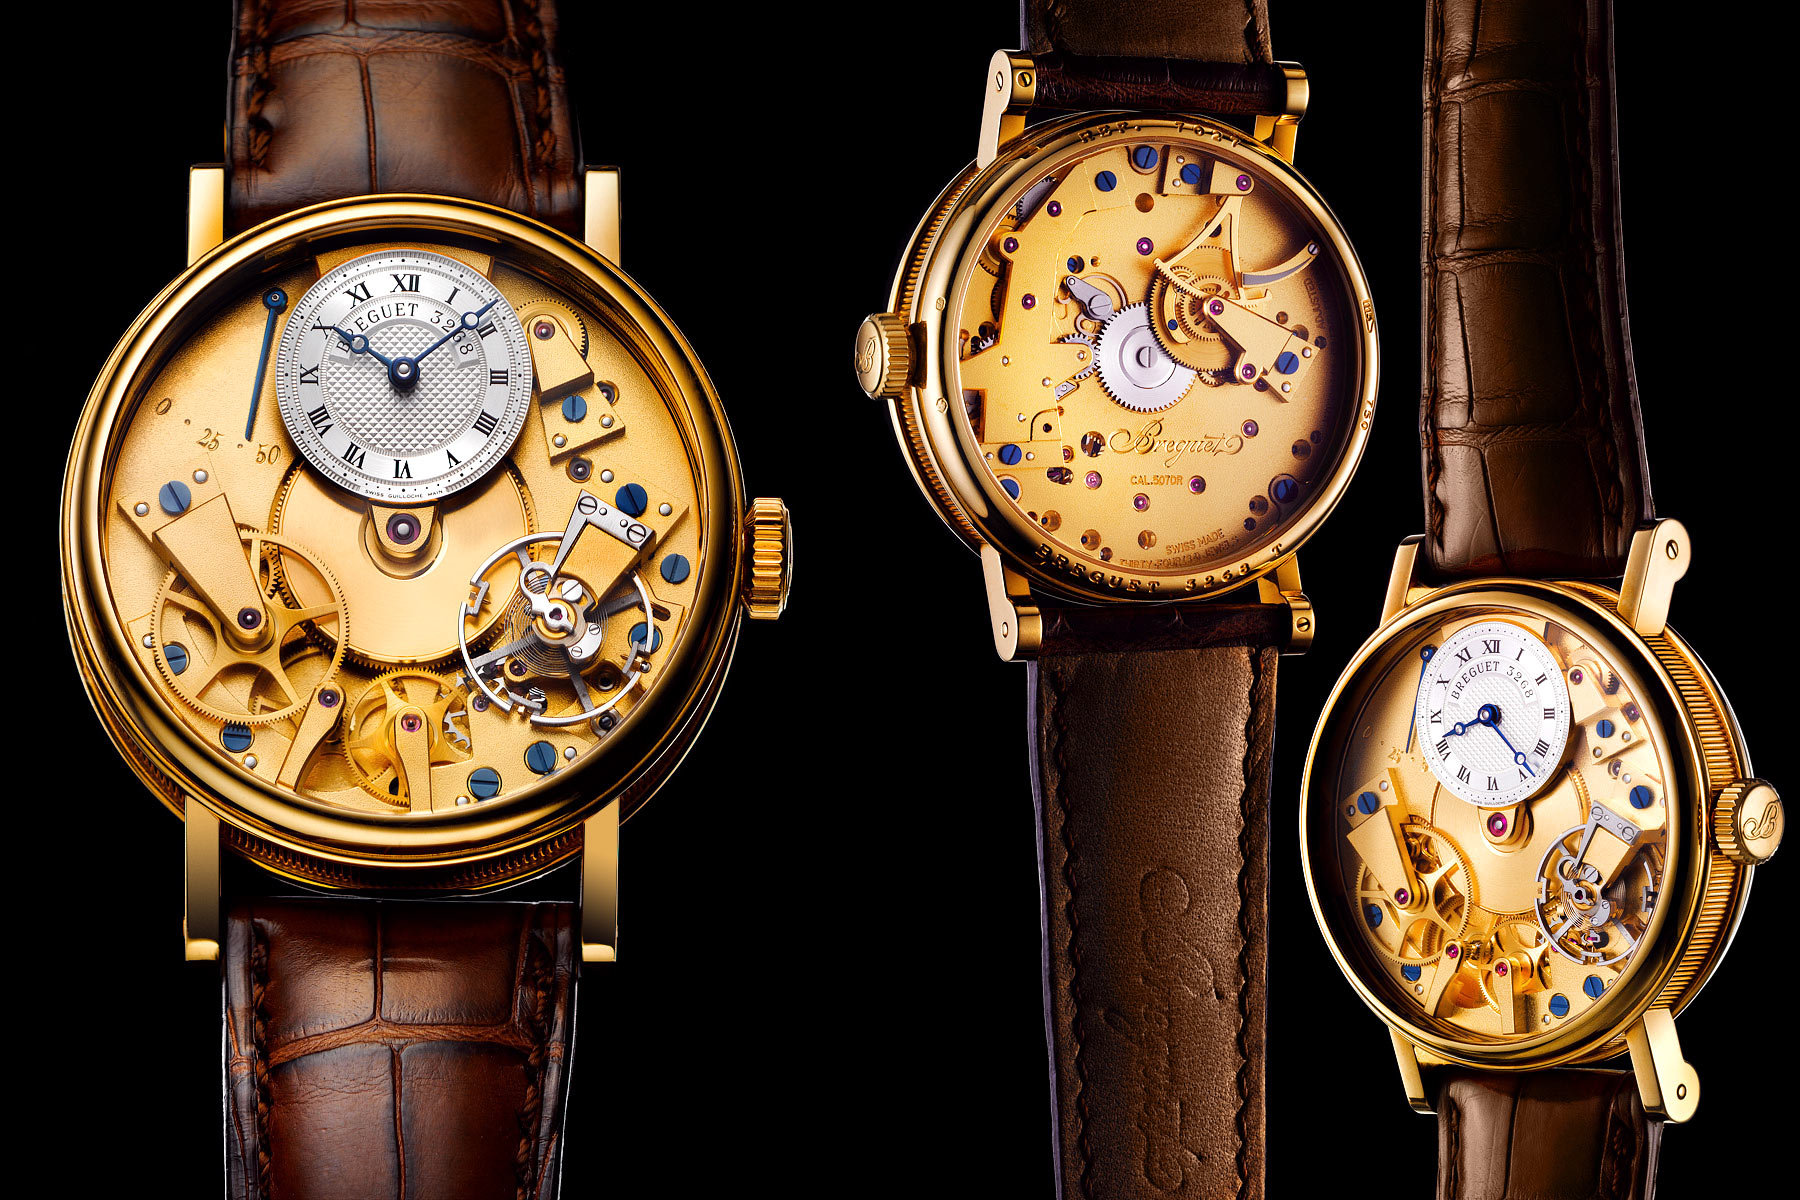 Breguet watch2.jpg